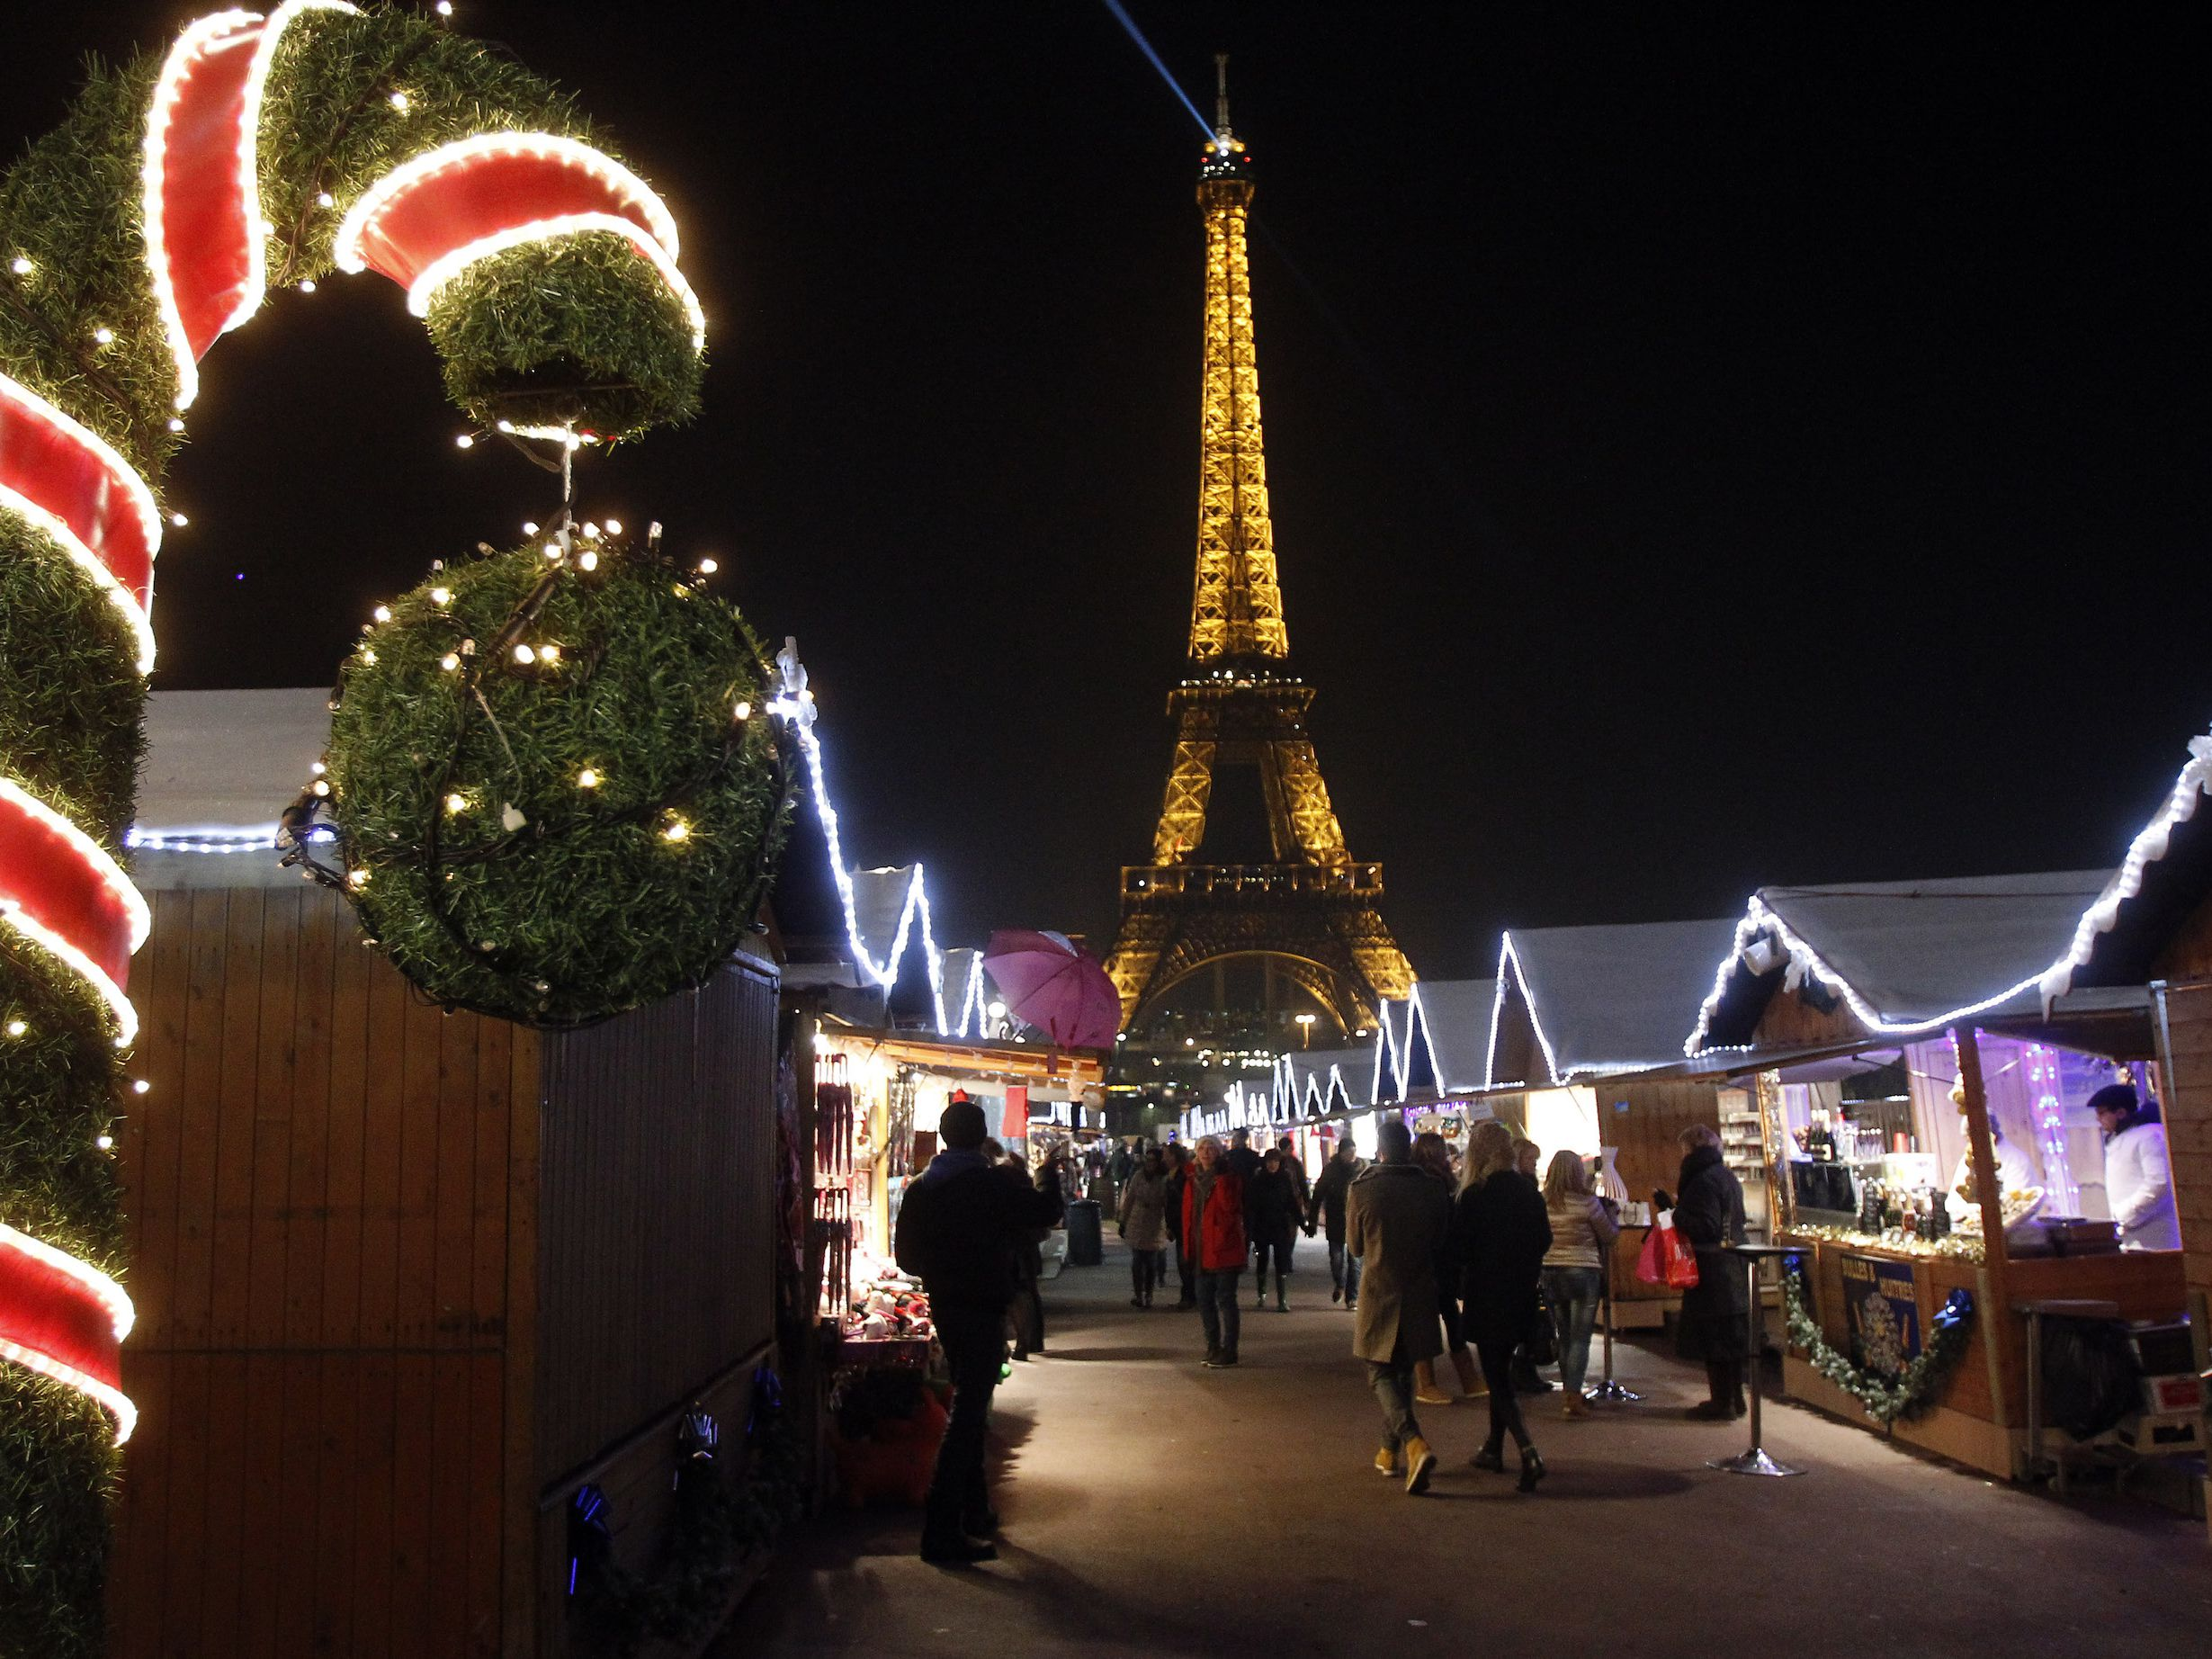 Versailes Christmas Market 2020 The Best Paris Christmas Markets for 2019 and 2020